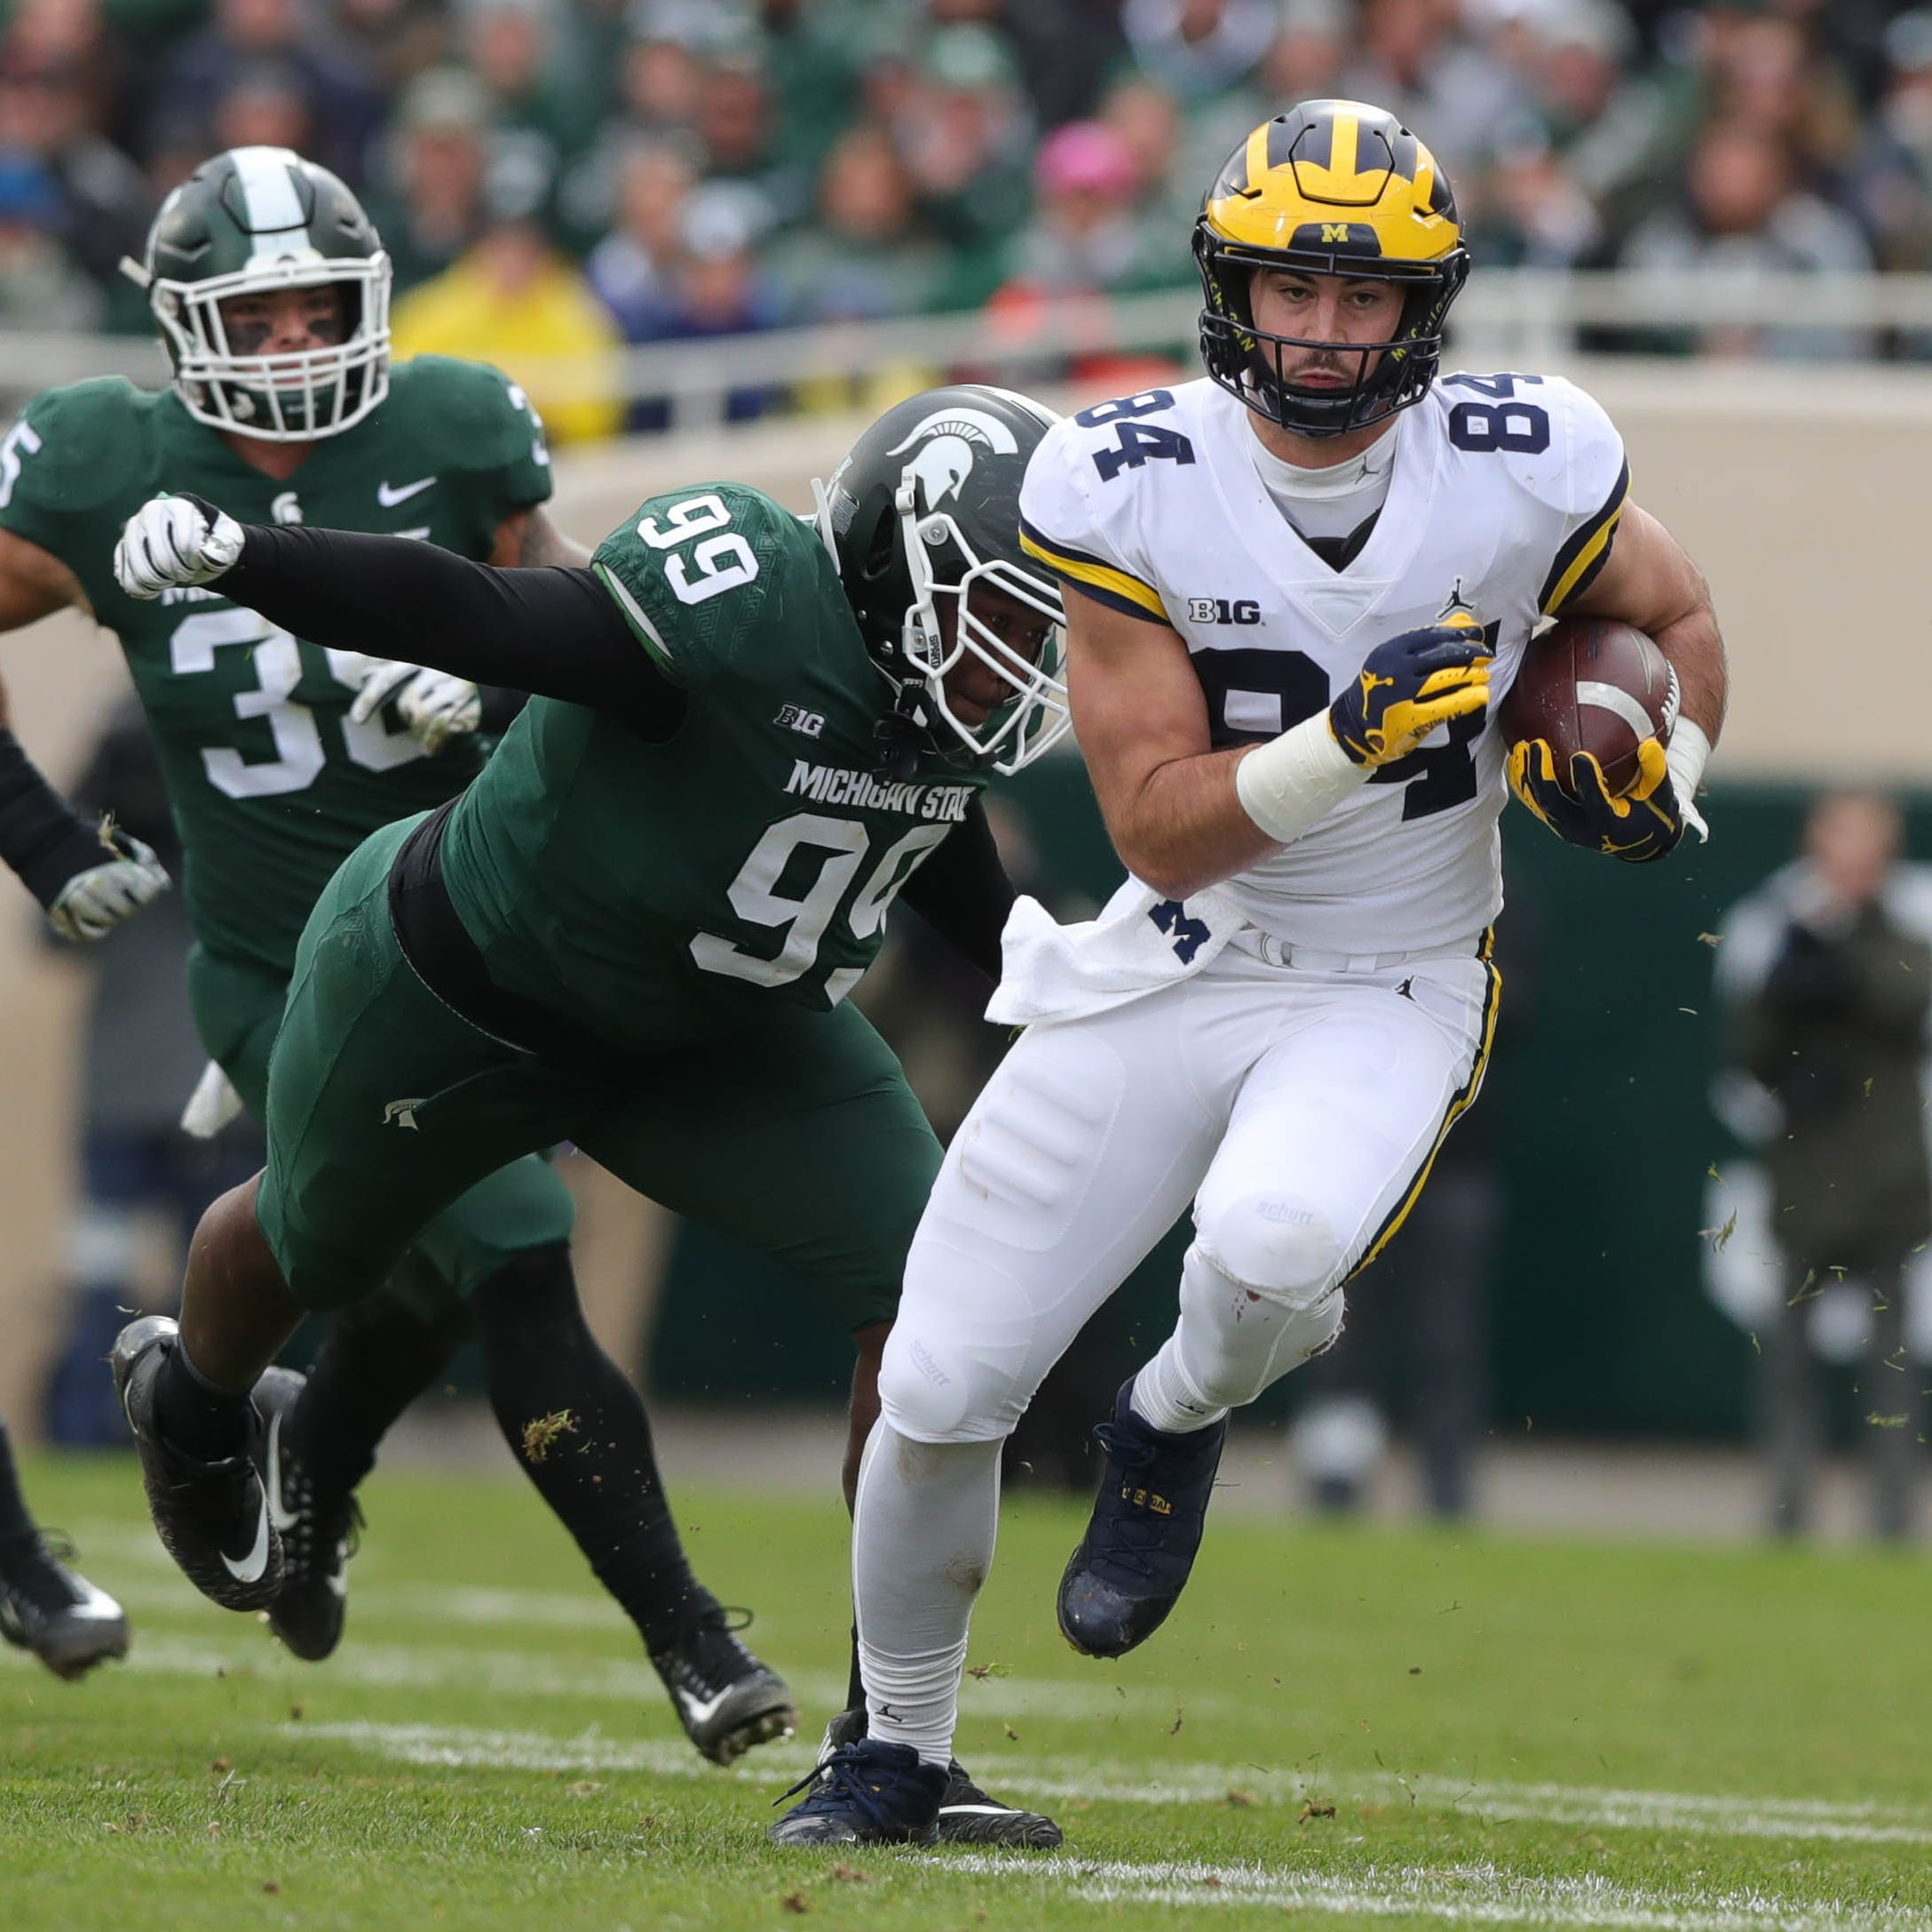 Michigan football beats Michigan State, 21-7: Blog recap